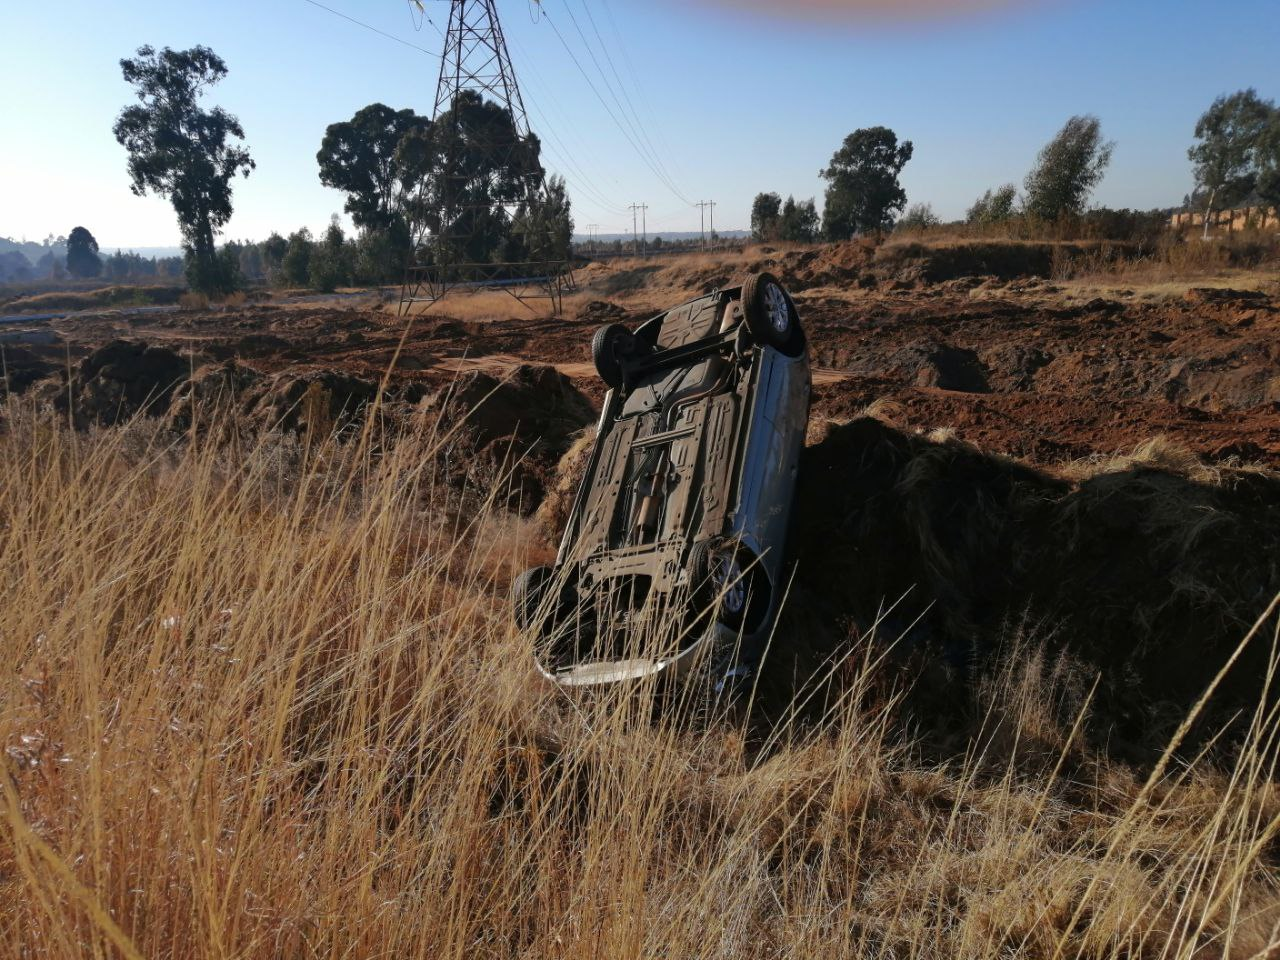 Gauteng: Driver rolls car to avoid colliding with a taxi